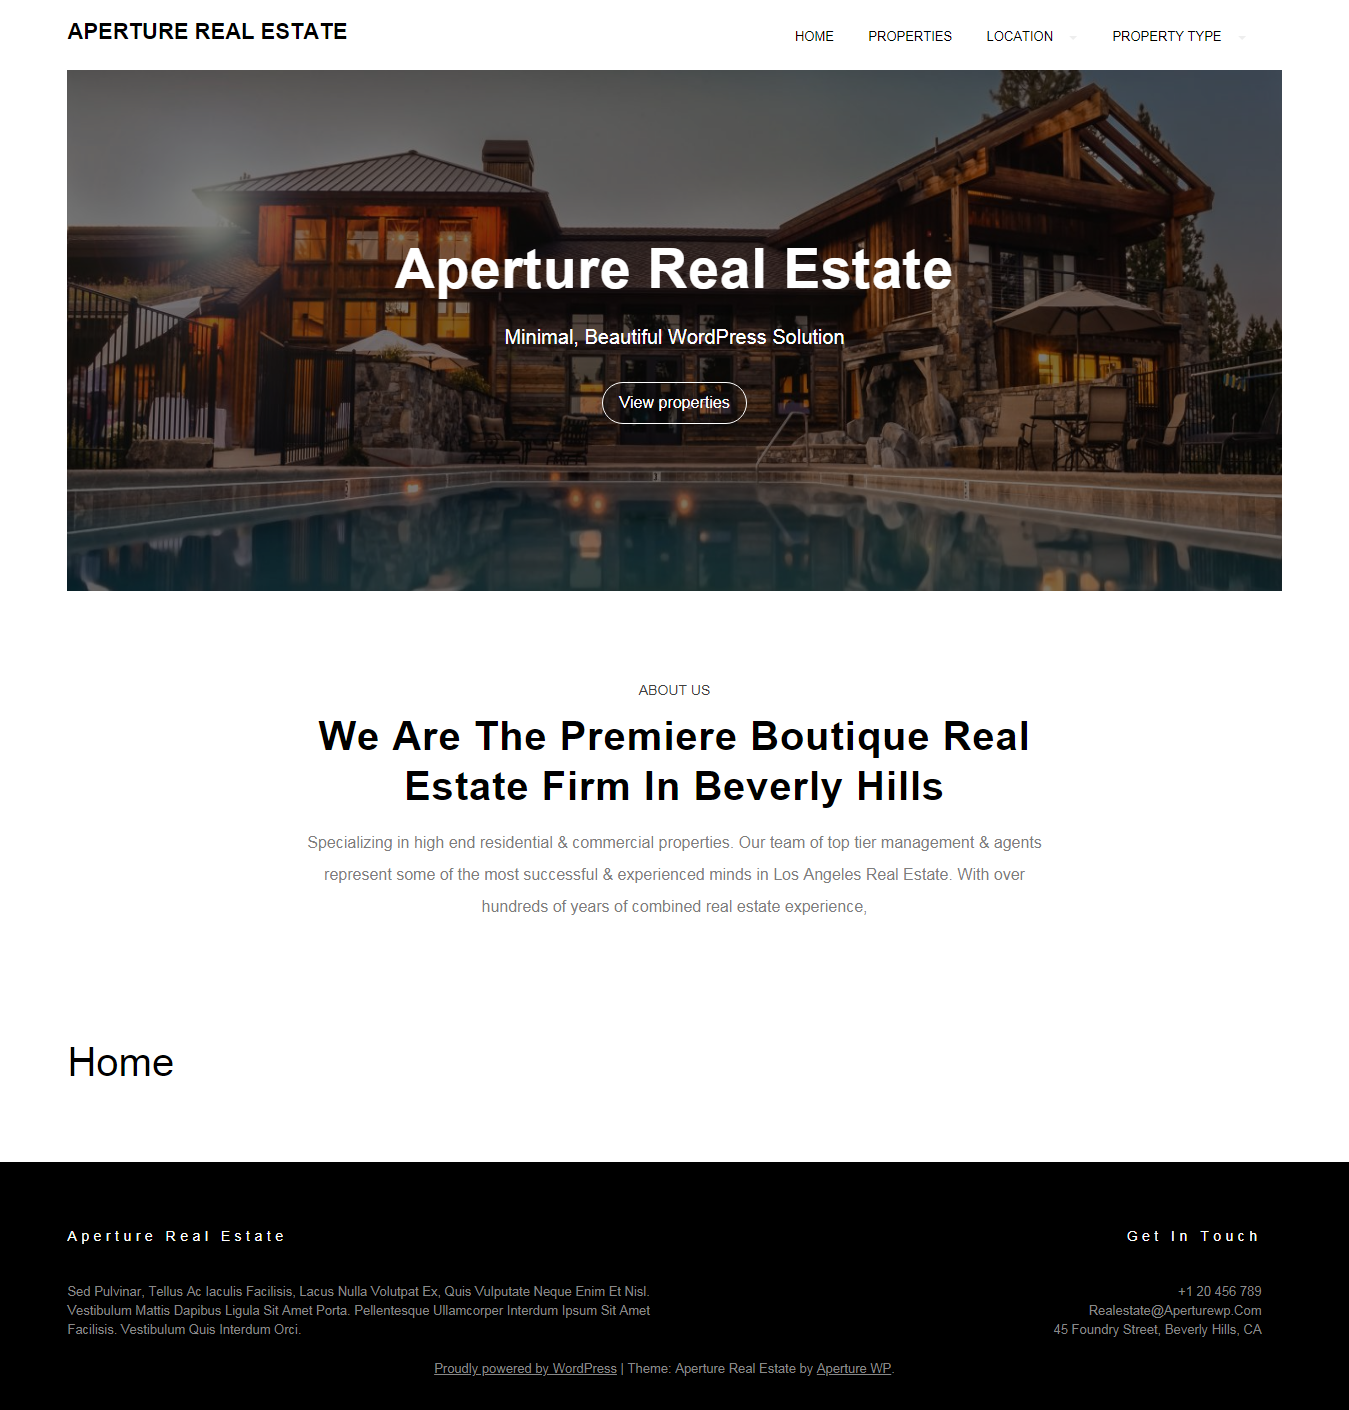 aperture real estate best free home rental property wordpress theme - 10+ Best Free Home Rental and Property WordPress Themes